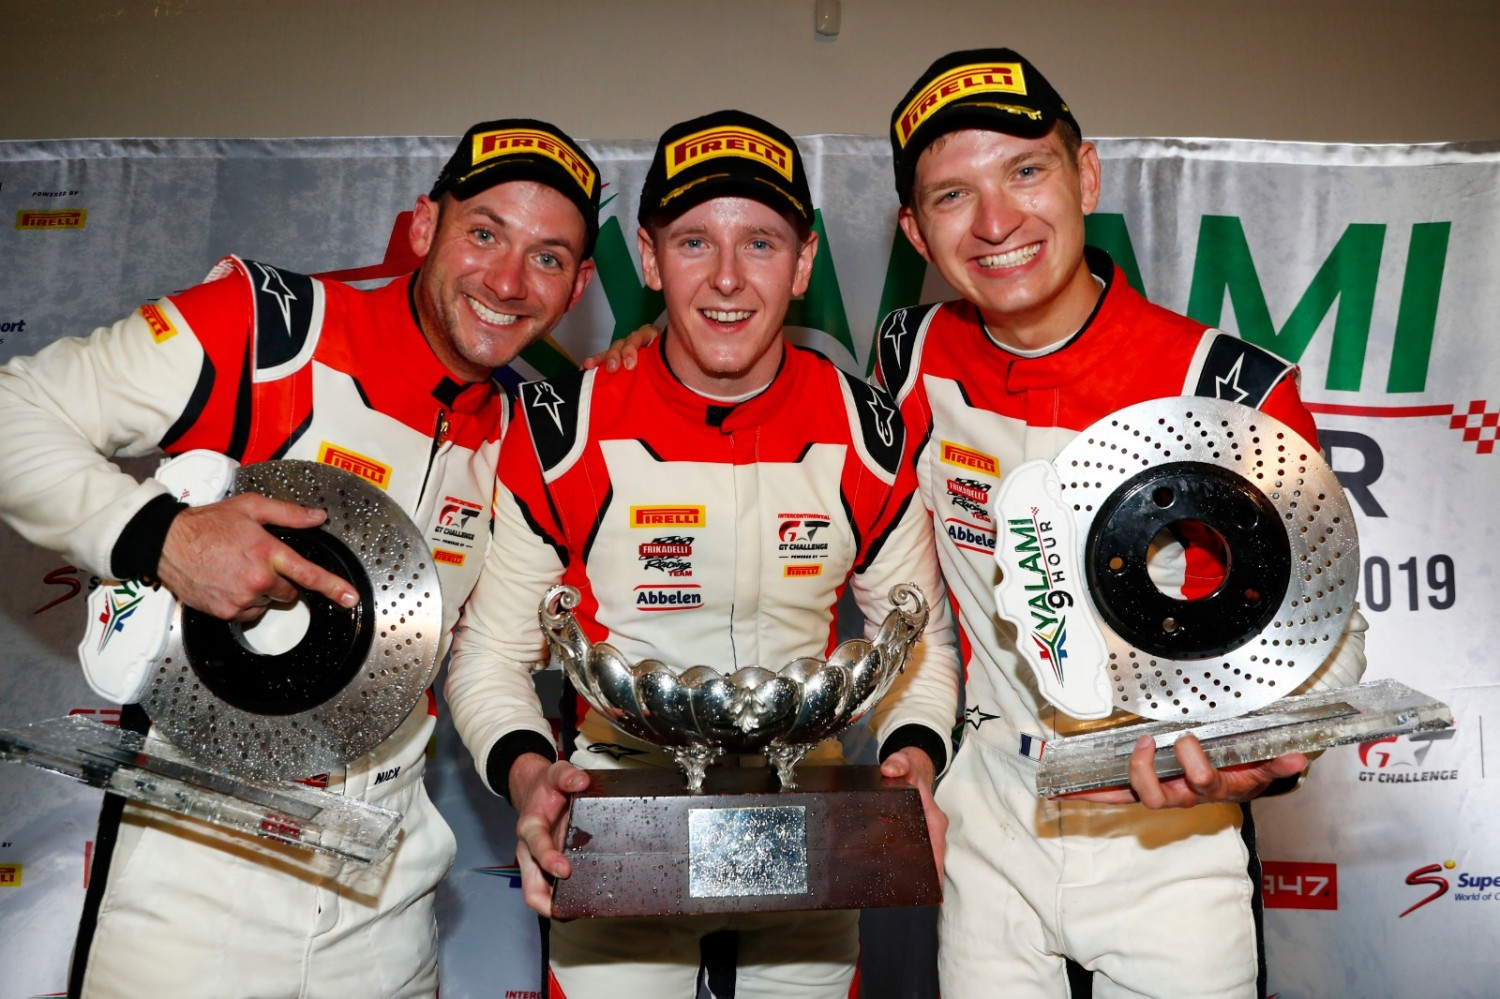 Porsche and Olsen win Kyalami 9 Hour to seal Intercontinental GT Challenge Powered by Pirelli championships